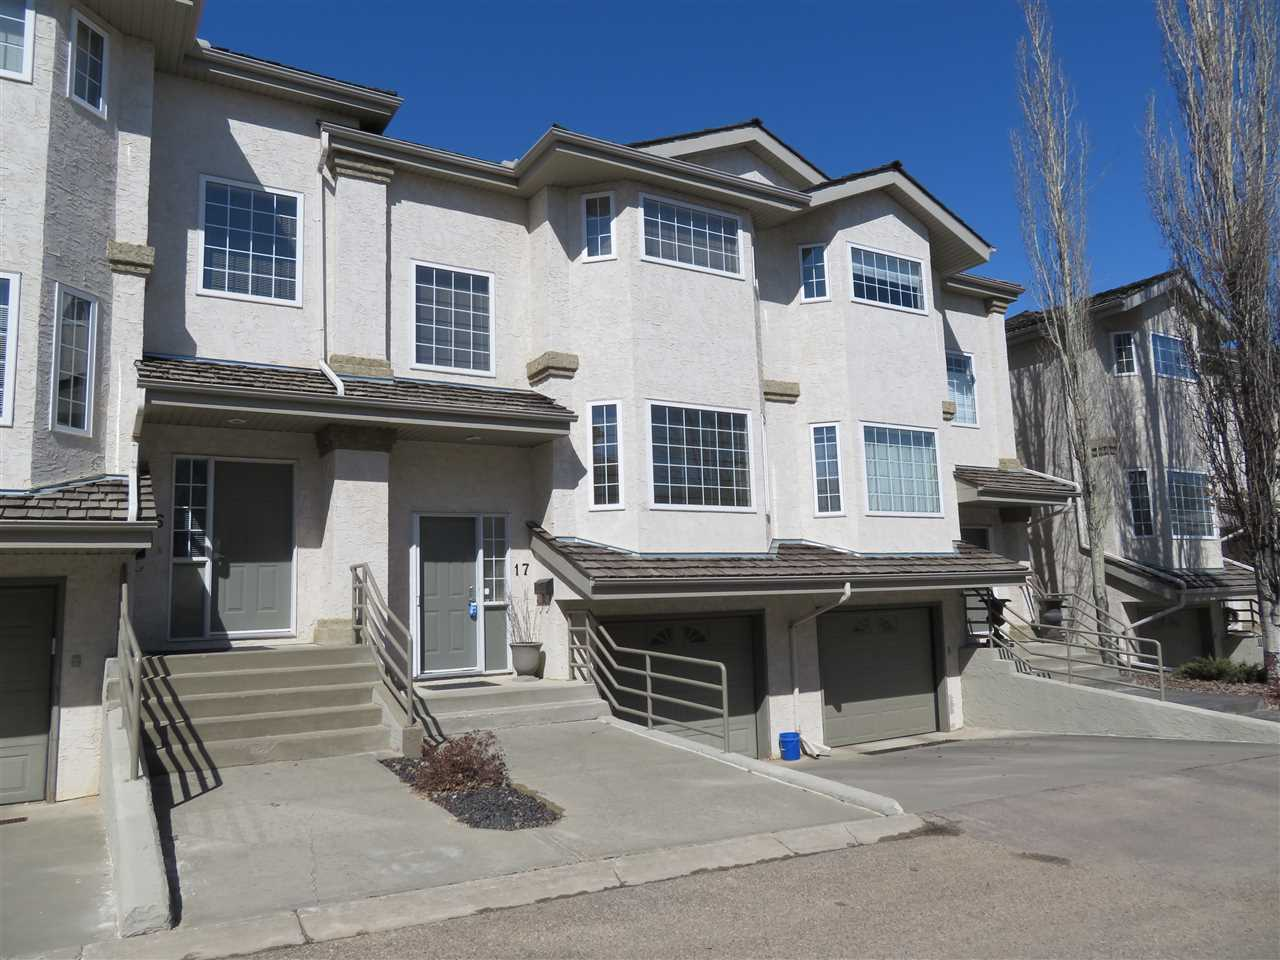 Main Photo: 17 1295 CARTER CREST Road in Edmonton: Zone 14 Townhouse for sale : MLS®# E4106870